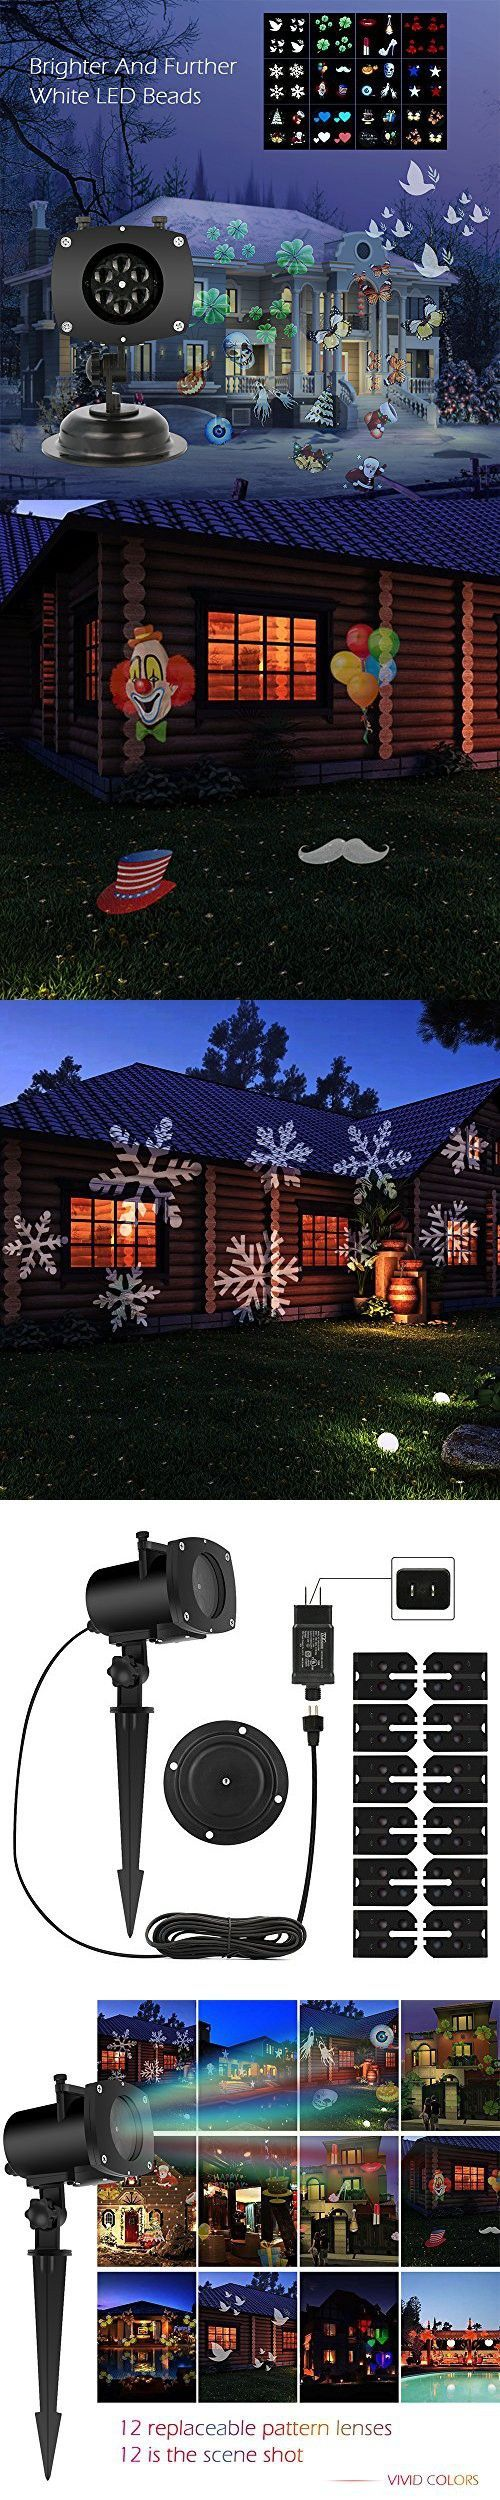 Christmas Projector Lamp Moving 12 Pattern LED Landscape Projection Lights Outdoor/Indoor Decor Spotlights Stage Irradiation for Christmas Party Holiday Home Decoration Garden Tree Wall